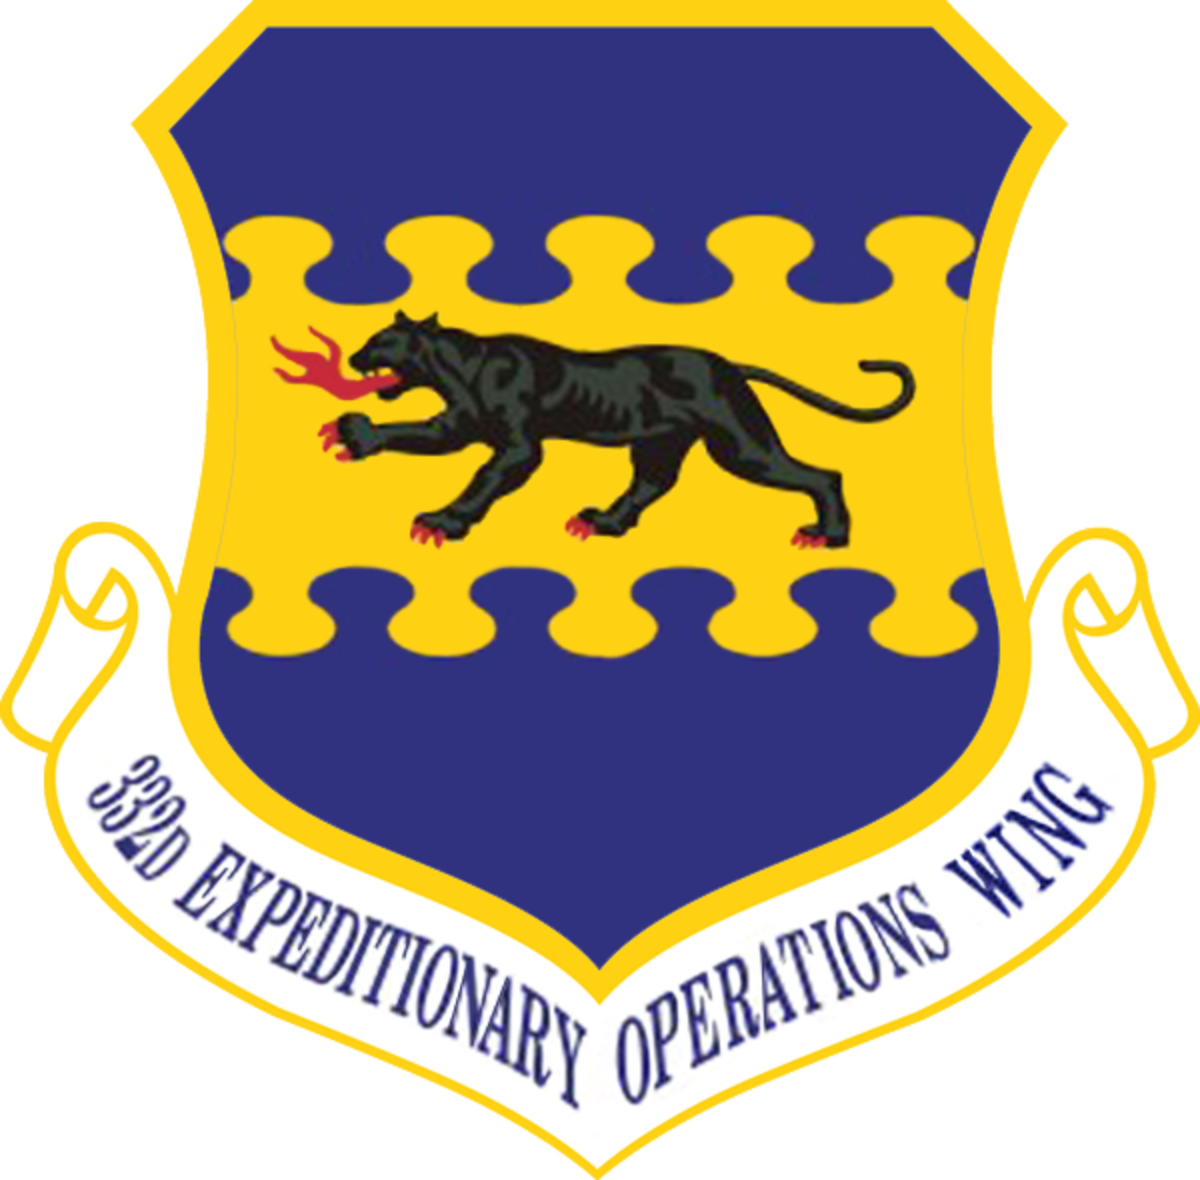 The official emblem of the Tuskegee Airmen of the 332d Air Expeditionary Wing of the USAF. The black panther is breathing fire and has fiery (or bloody) claws. The airmen were as fierce as this and more.